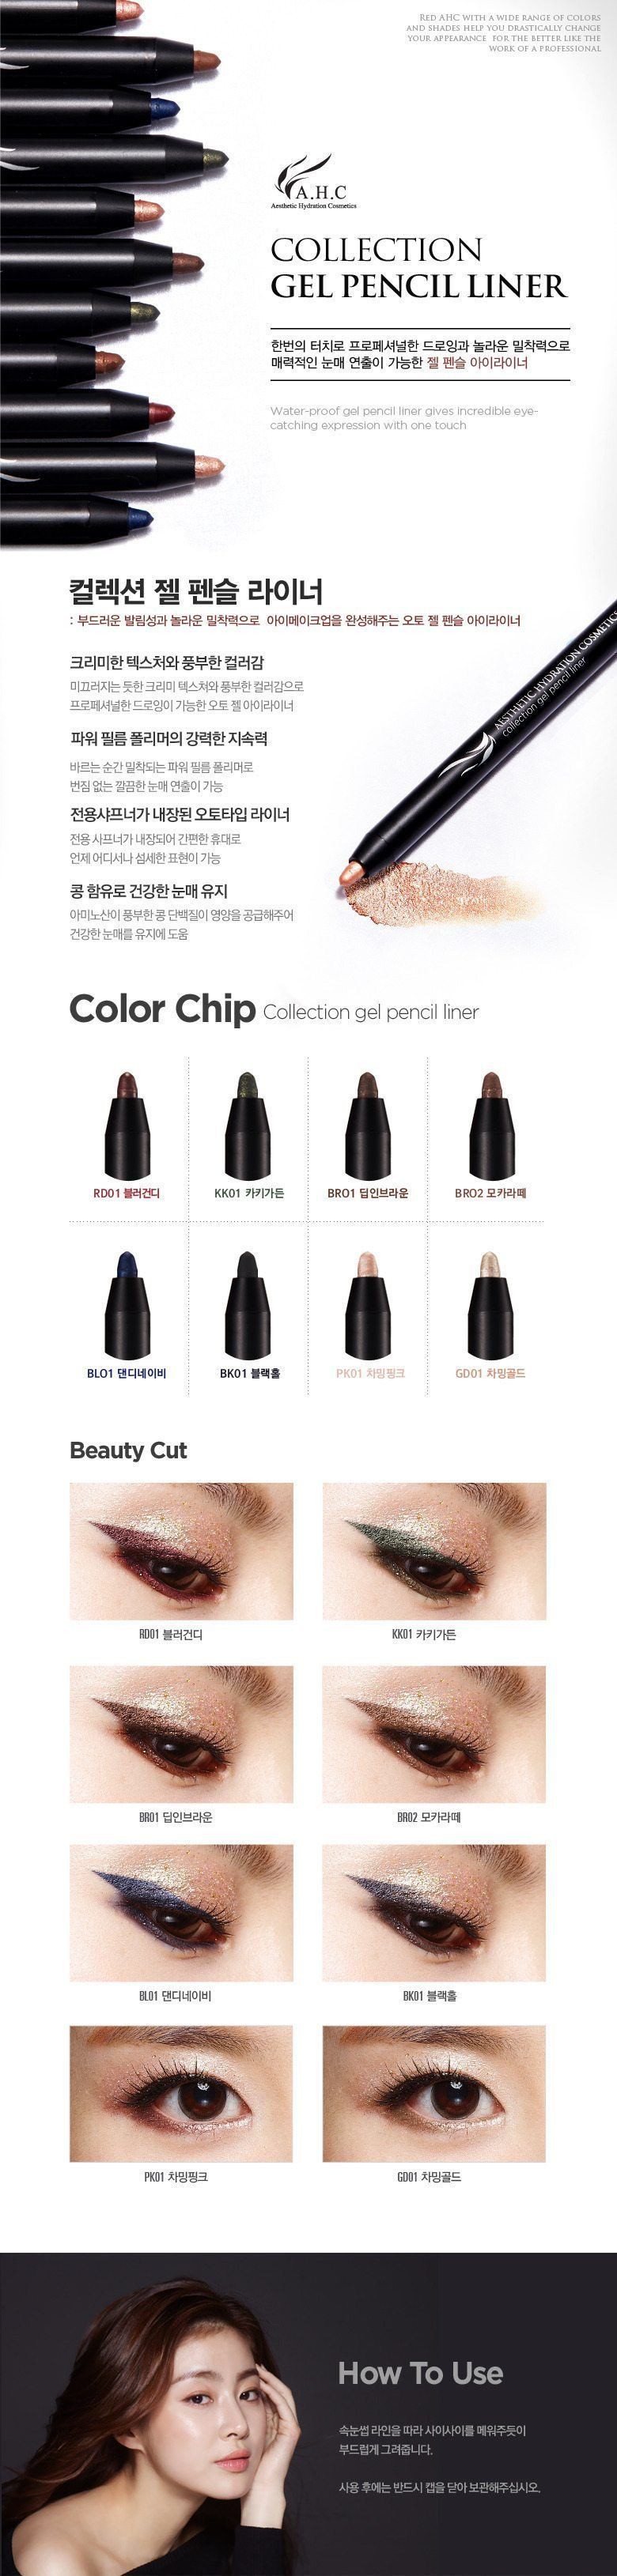 AHC Collection Gel Pencil Liner 0.5g malaysia singapore indonesia